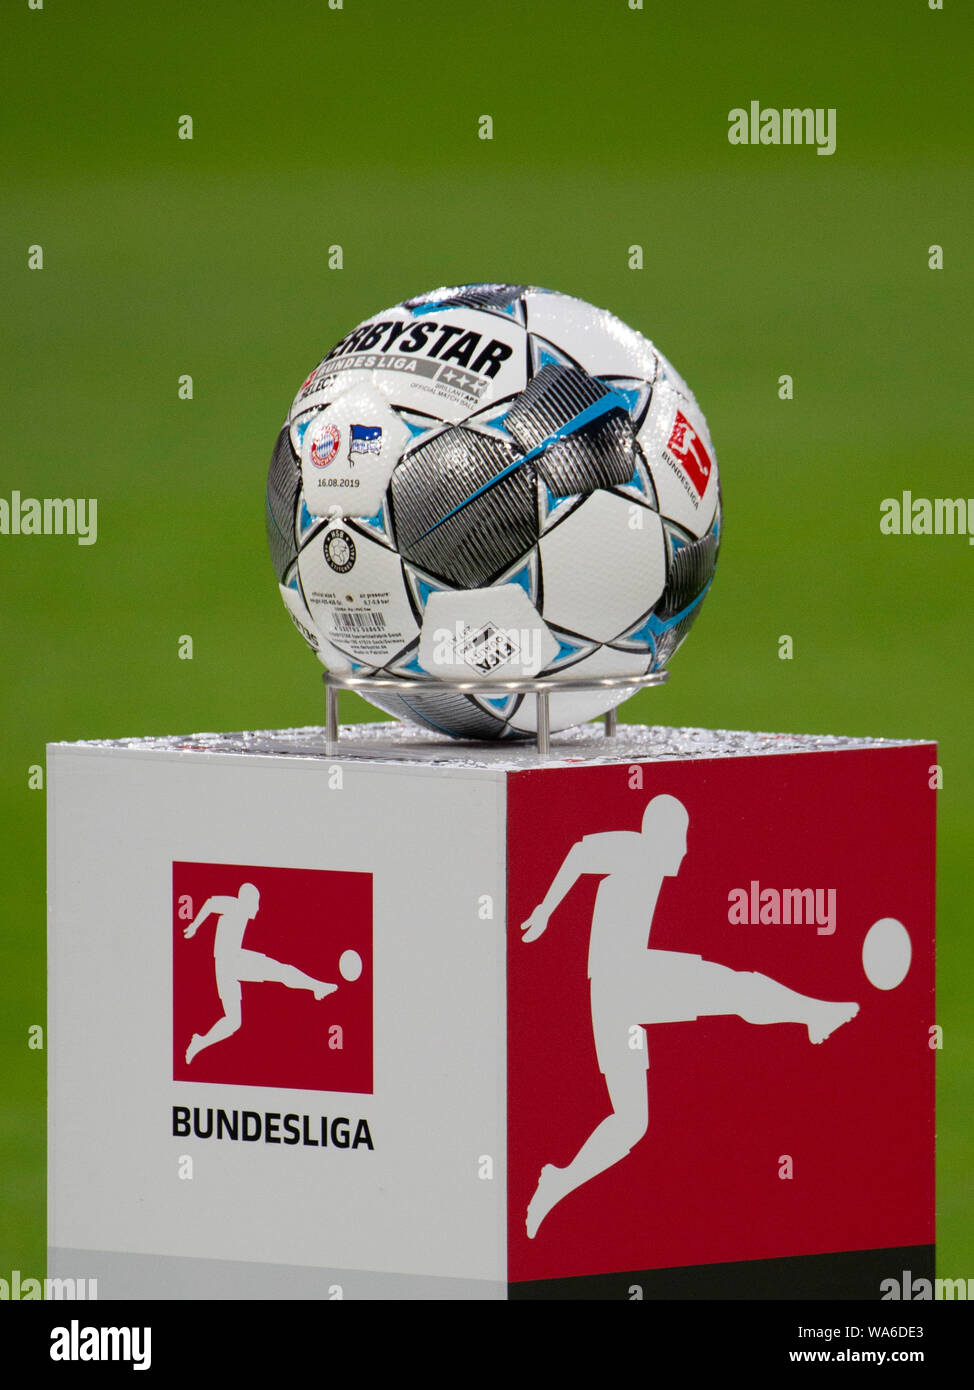 ball and dfl logo soccer fc bayern munich m hertha bsc berlin b 2 2 bundesliga 1 matchday season 2019 2020 on 16 08 2019 in muenchen allianzarena germany editorial note dfl regulations https www alamy com ball and dfl logo soccer fc bayern munich m hertha bsc berlin b 2 2 bundesliga 1matchday season 20192020 on 16082019 in muenchen allianzarena germany editorial note dfl regulations prohibit any use of photographs as image sequences and or quasi video usage worldwide image264444379 html